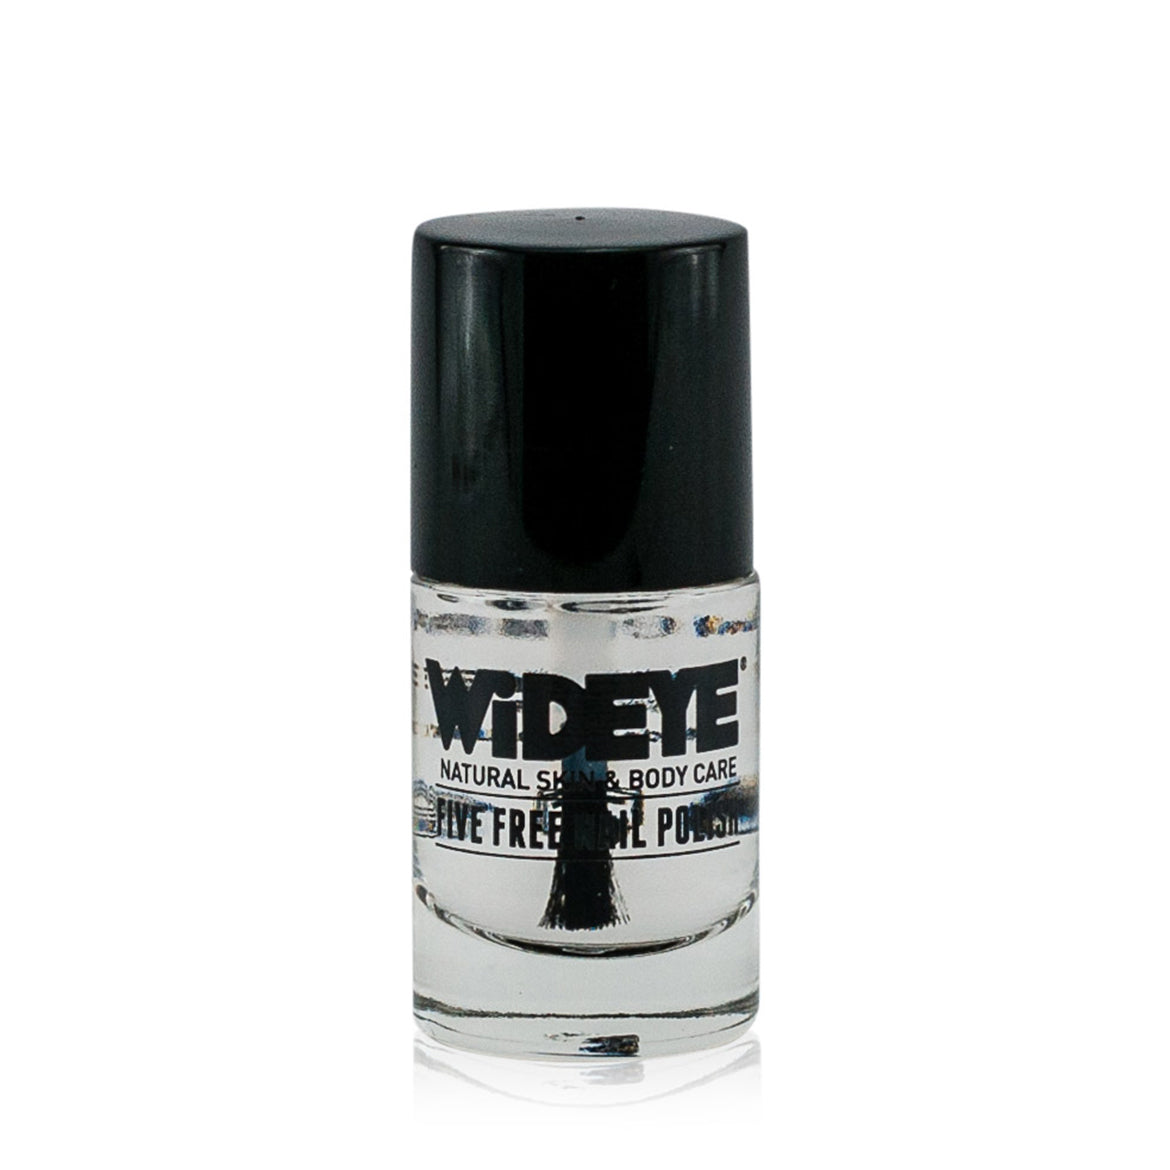 Protective top coat nail varnish in a glass bottle by WiDEYE